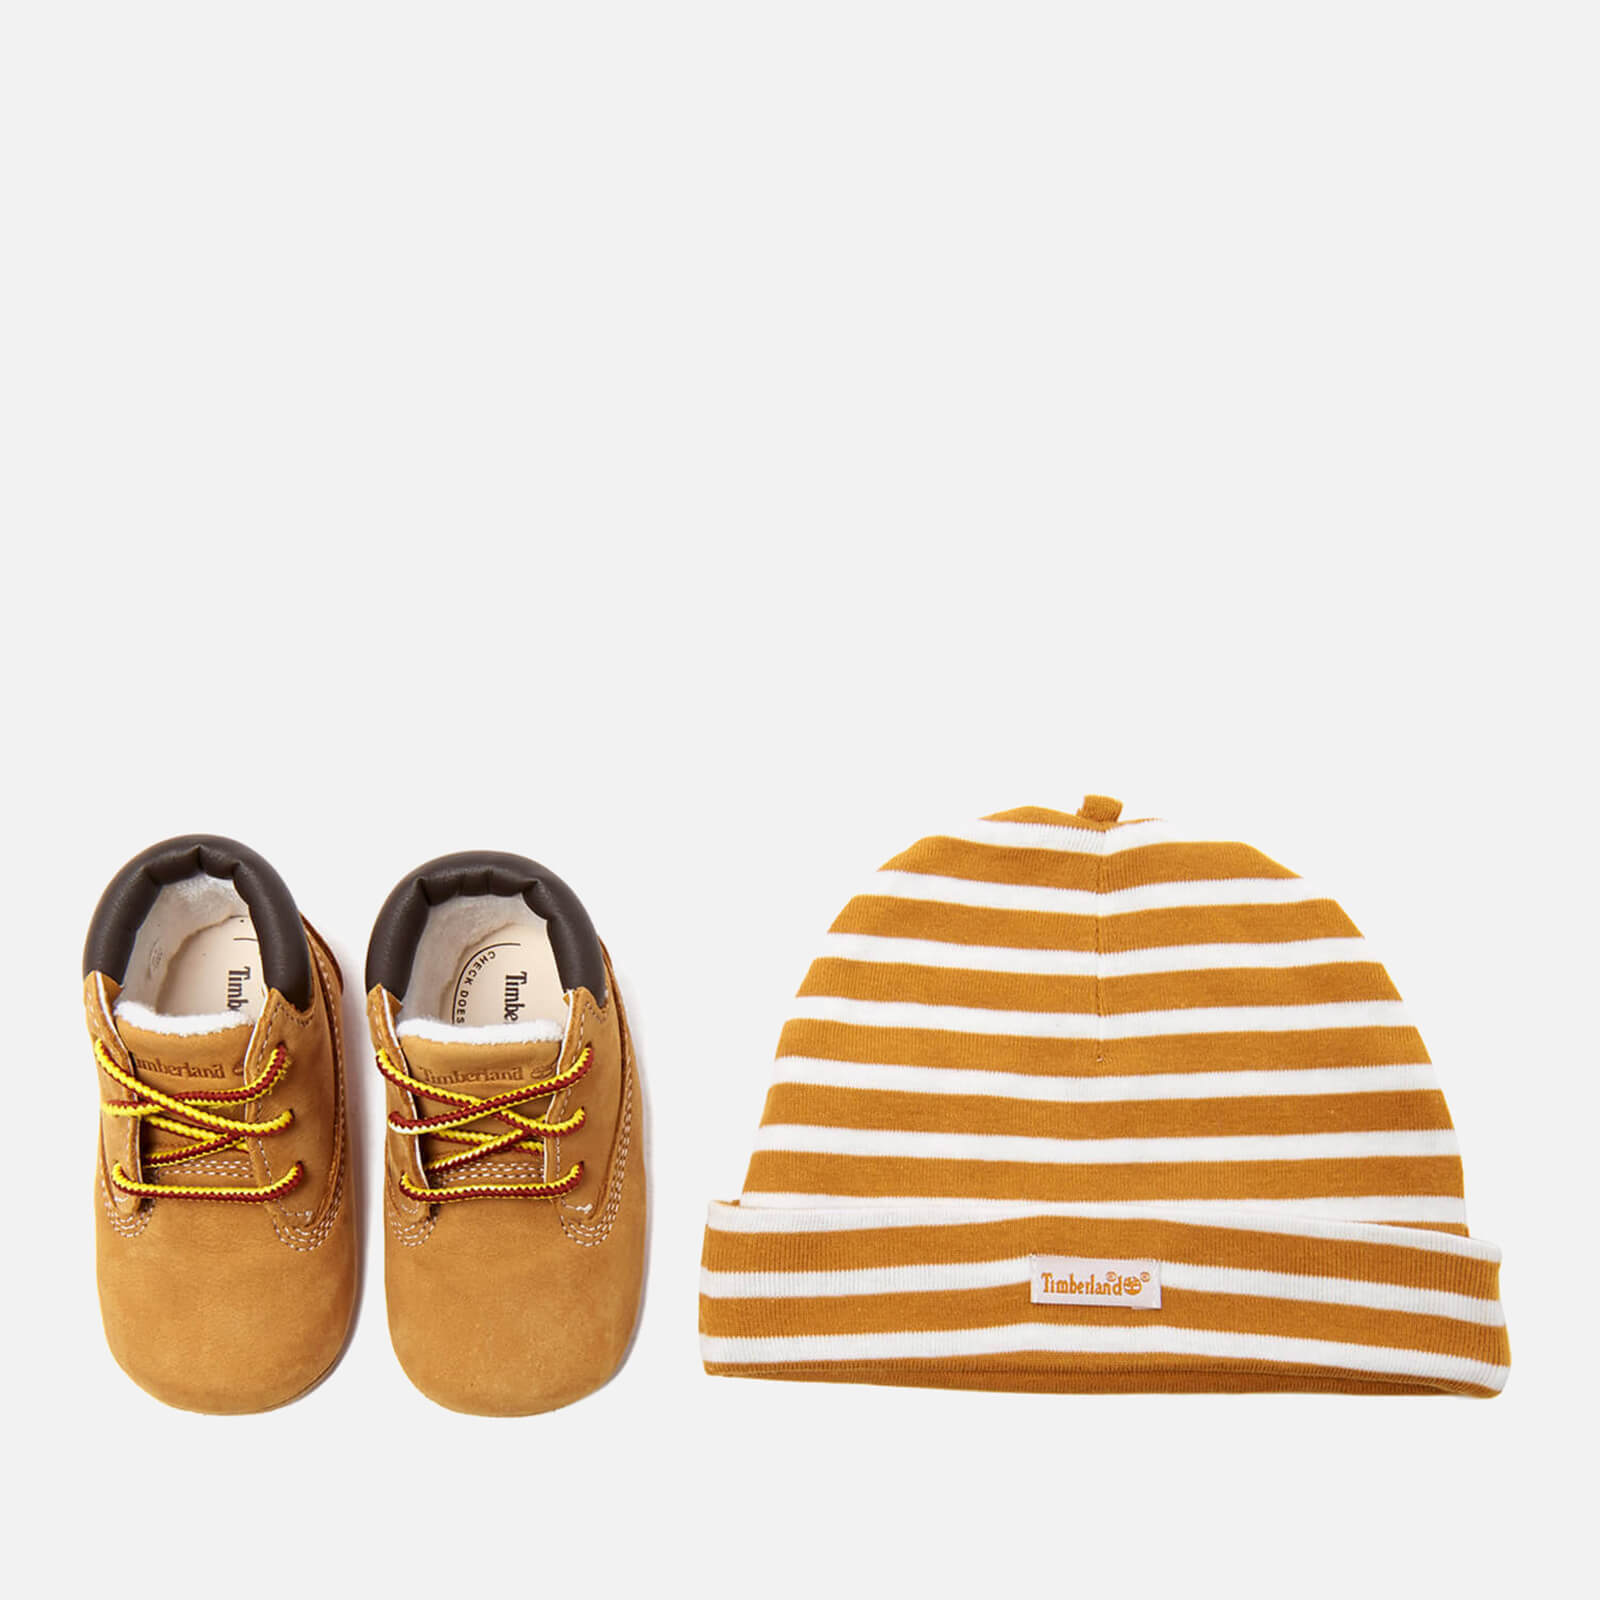 0c88941d8c965 Timberland Babies' Crib Bootie with Hat Gift Set - Wheat Junior Clothing |  TheHut.com